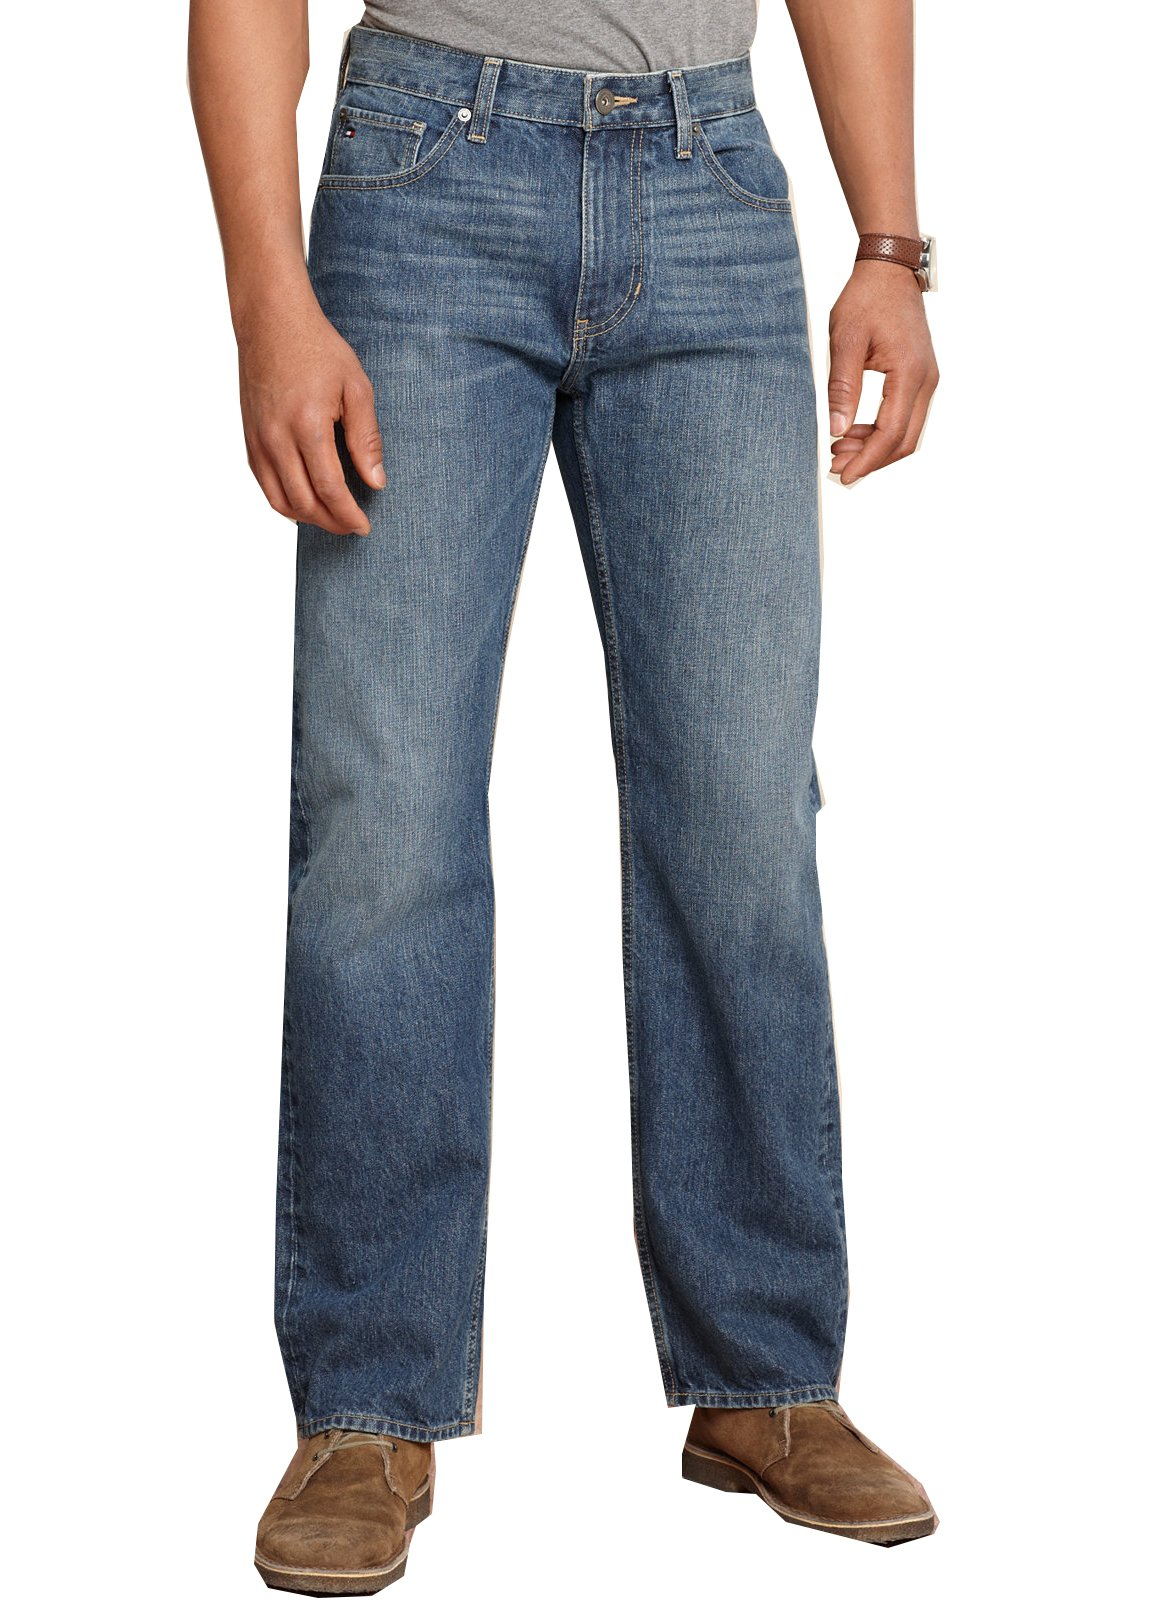 Tommy Hilfiger Men's Core Jeans, Varsity Freedom Relaxed Fit Jeans